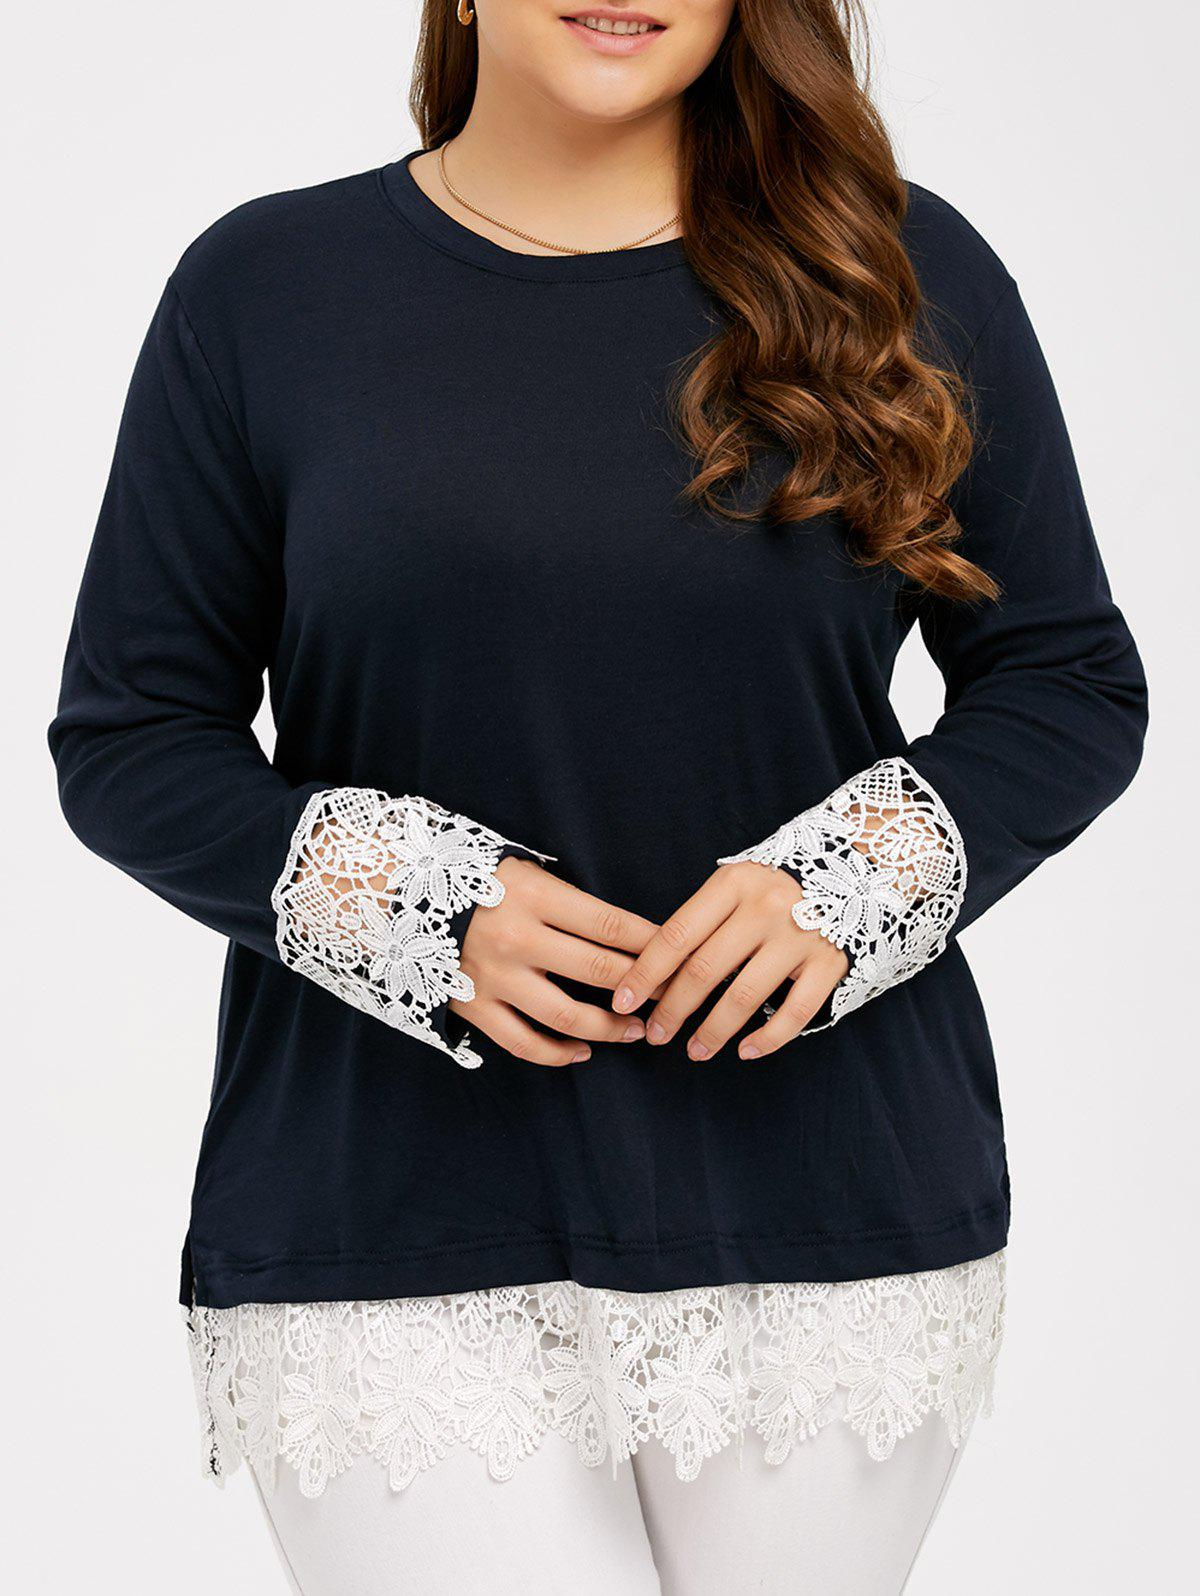 Hot Lace Splicing Plus Size T-Shirt